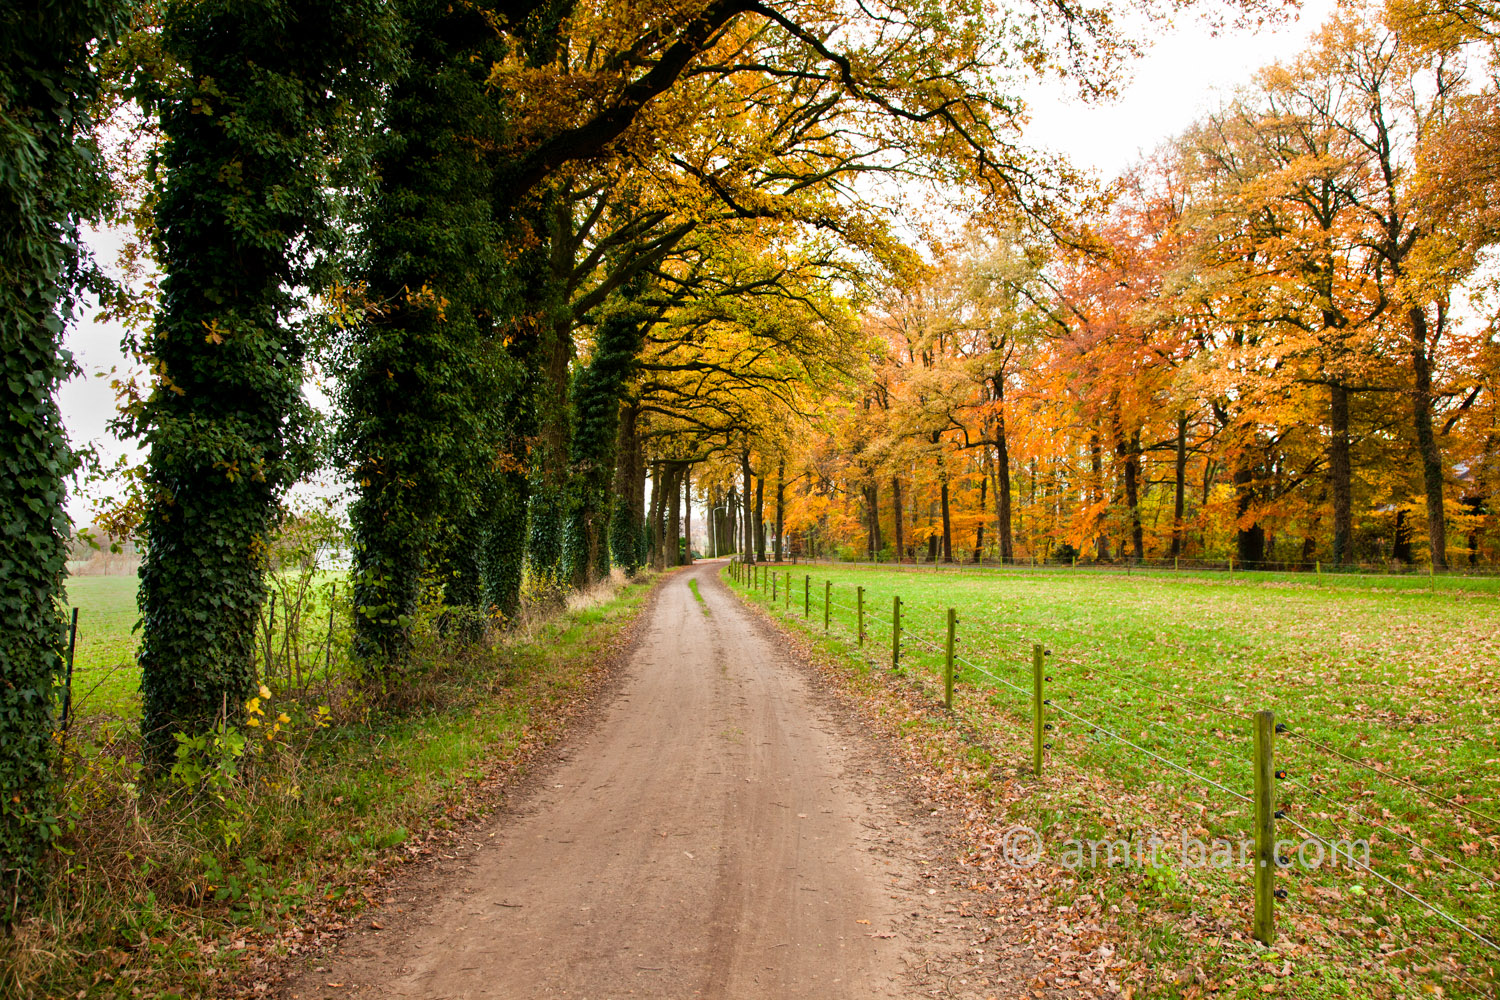 Autumn landscape: Autumn landscape in Doetinchem, The Netherlands